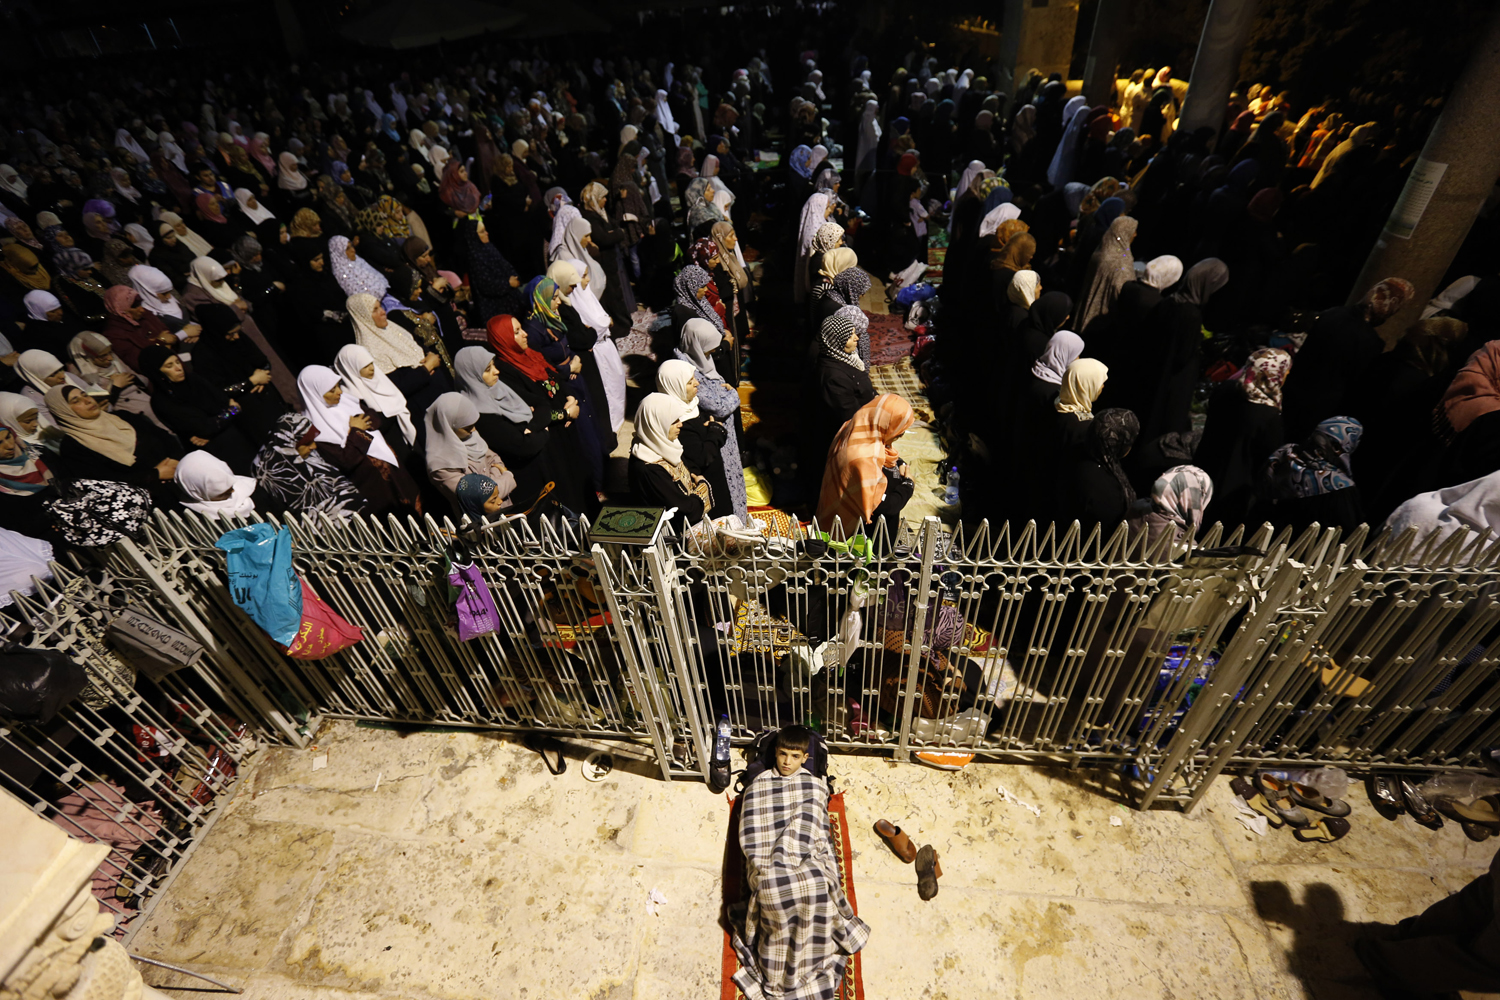 Aug. 4, 2013. Female Palestinian worshippers pray in front of the Dome of the Rock, in the Al Aqsa Mosque compound in Jerusalem, during Lailat-Al-Qadr, or Night of Power, in which the Muslim Holy book of Koran was revealed to Prophet Mohammad by Allah.